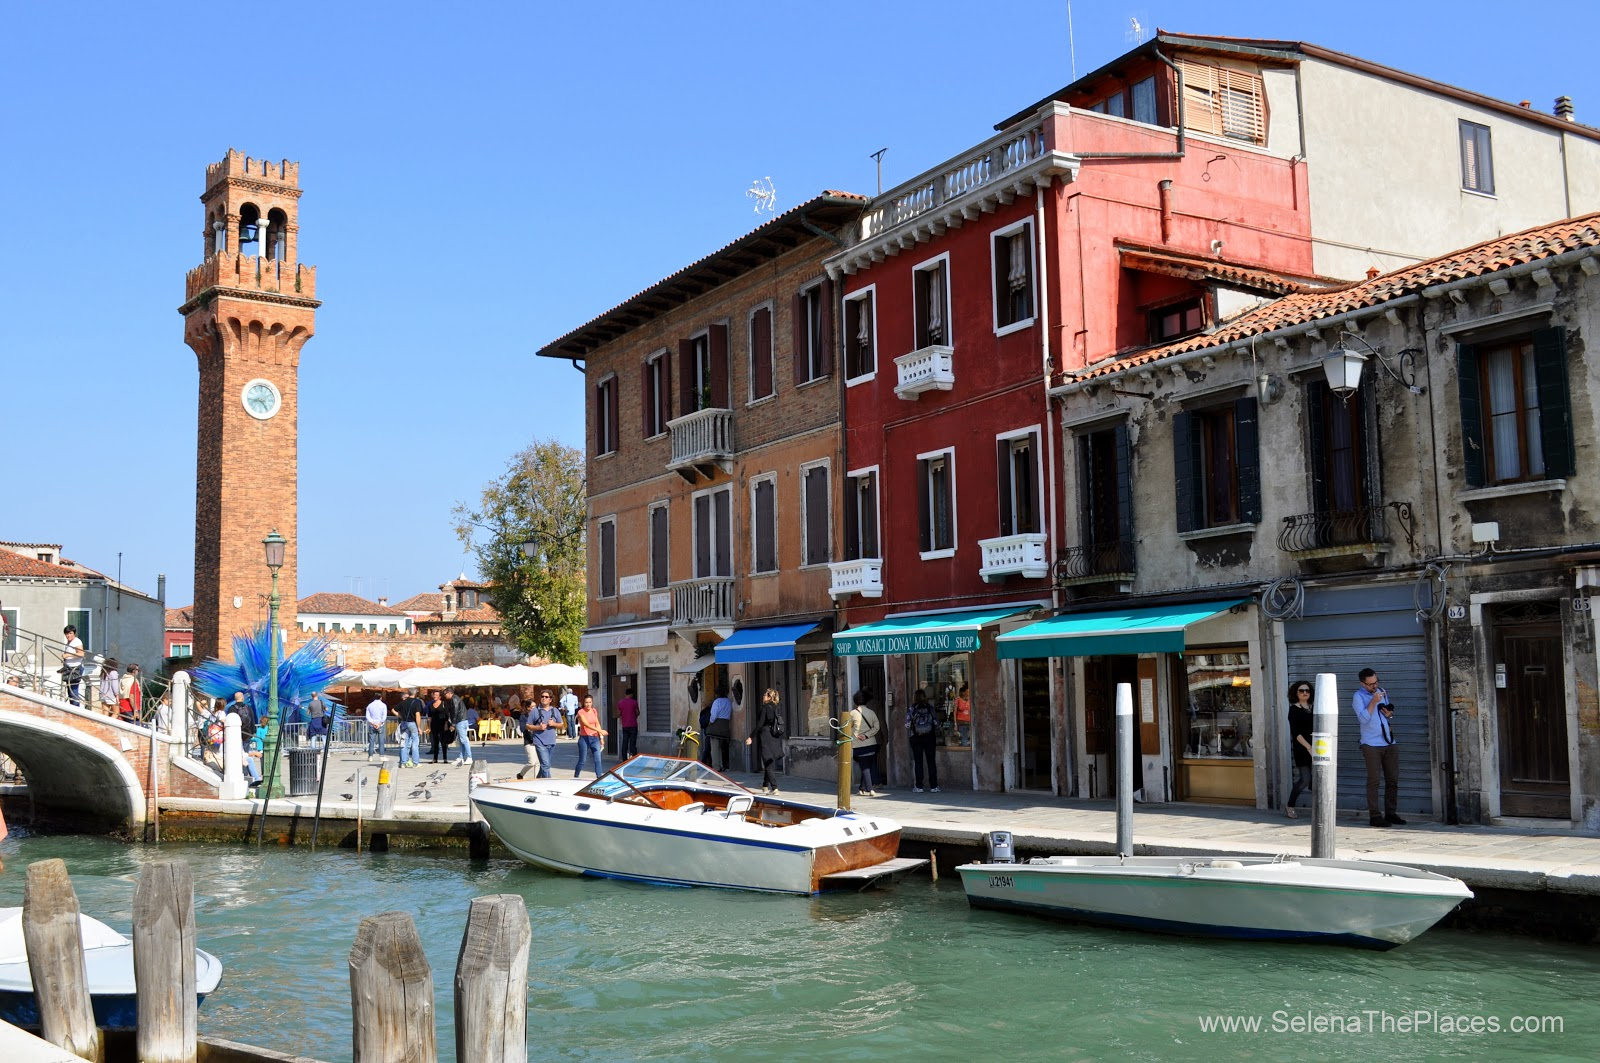 Murano & Burano - Islands of Venice